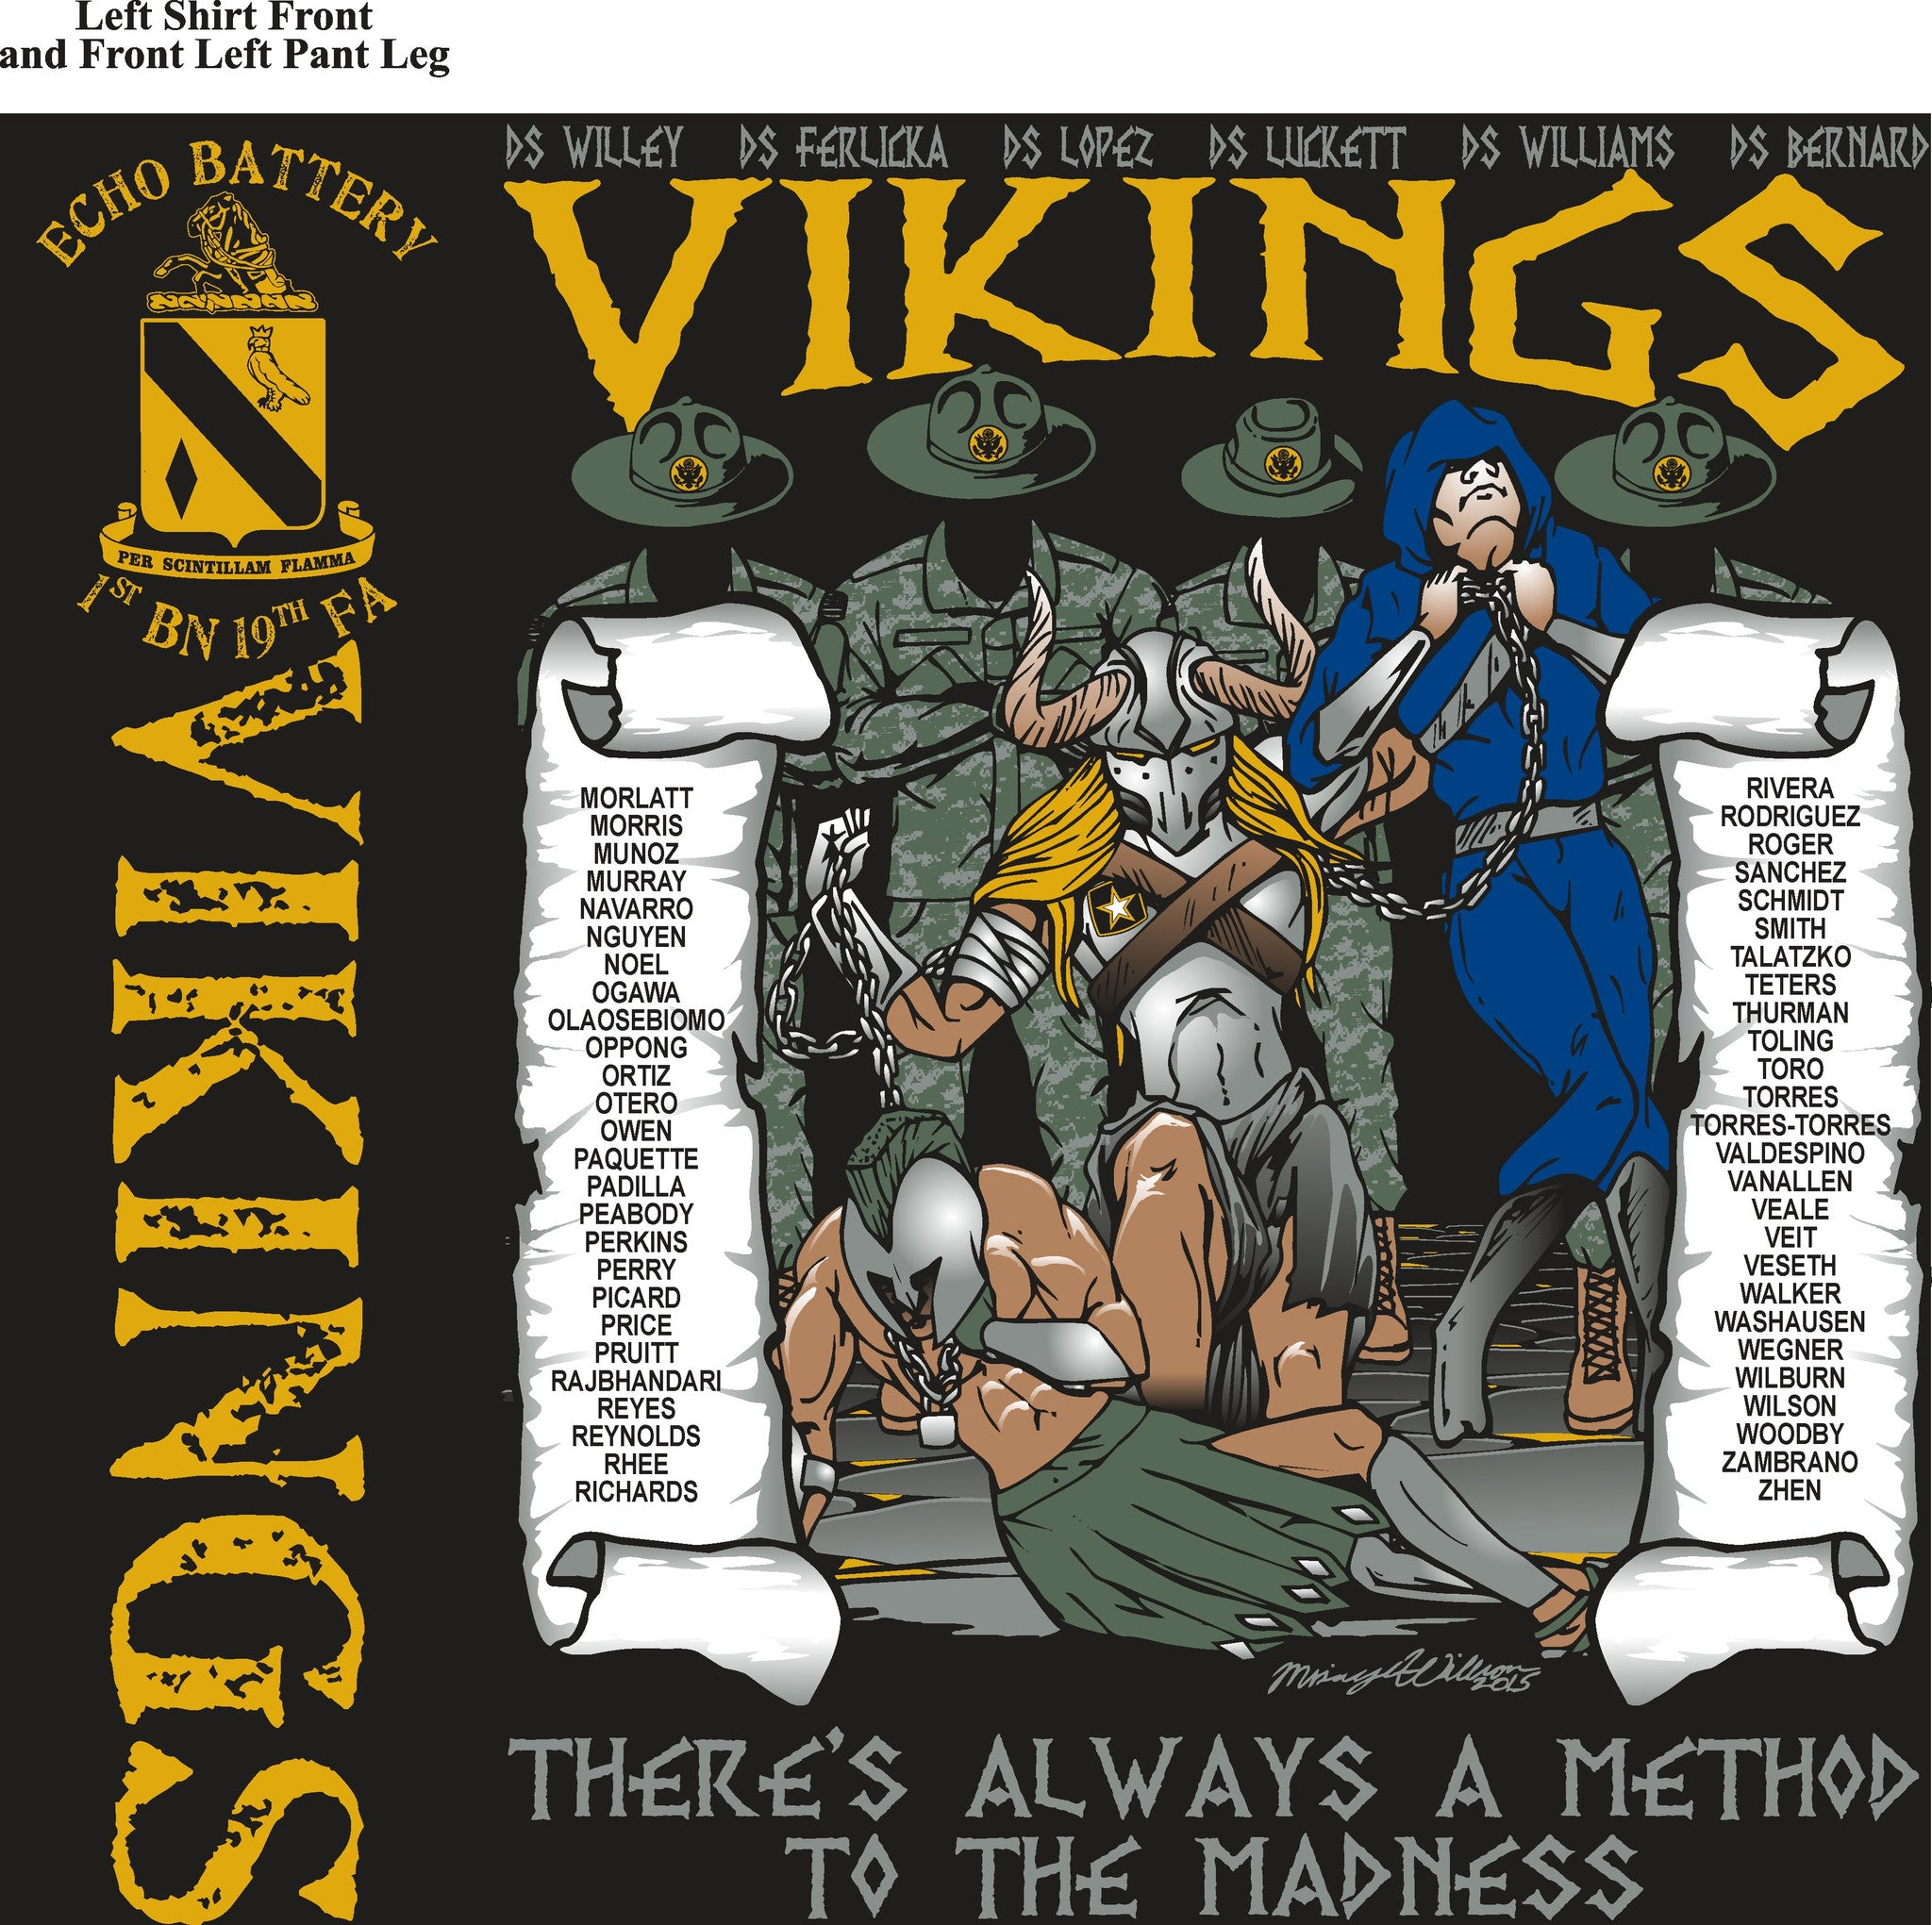 Platoon Shirts ECHO 1st 19th VIKINGS JUNE 2015